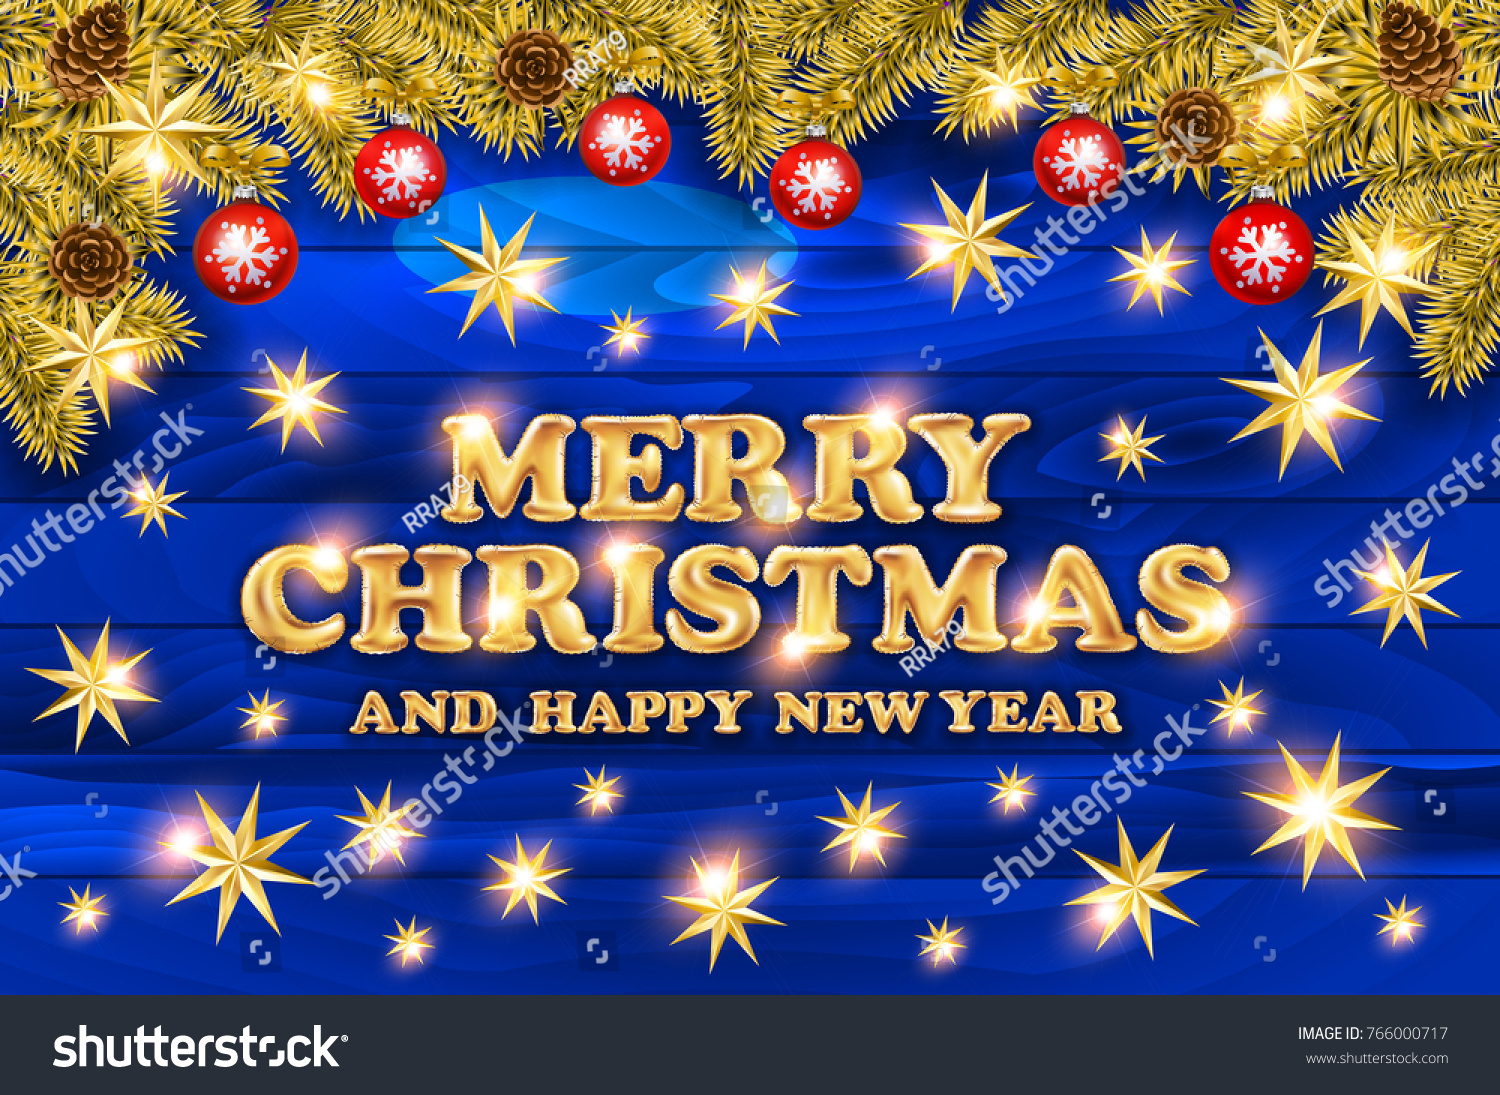 2018 merry christmas and happy new year card with christmas balls and serpentine on wood background